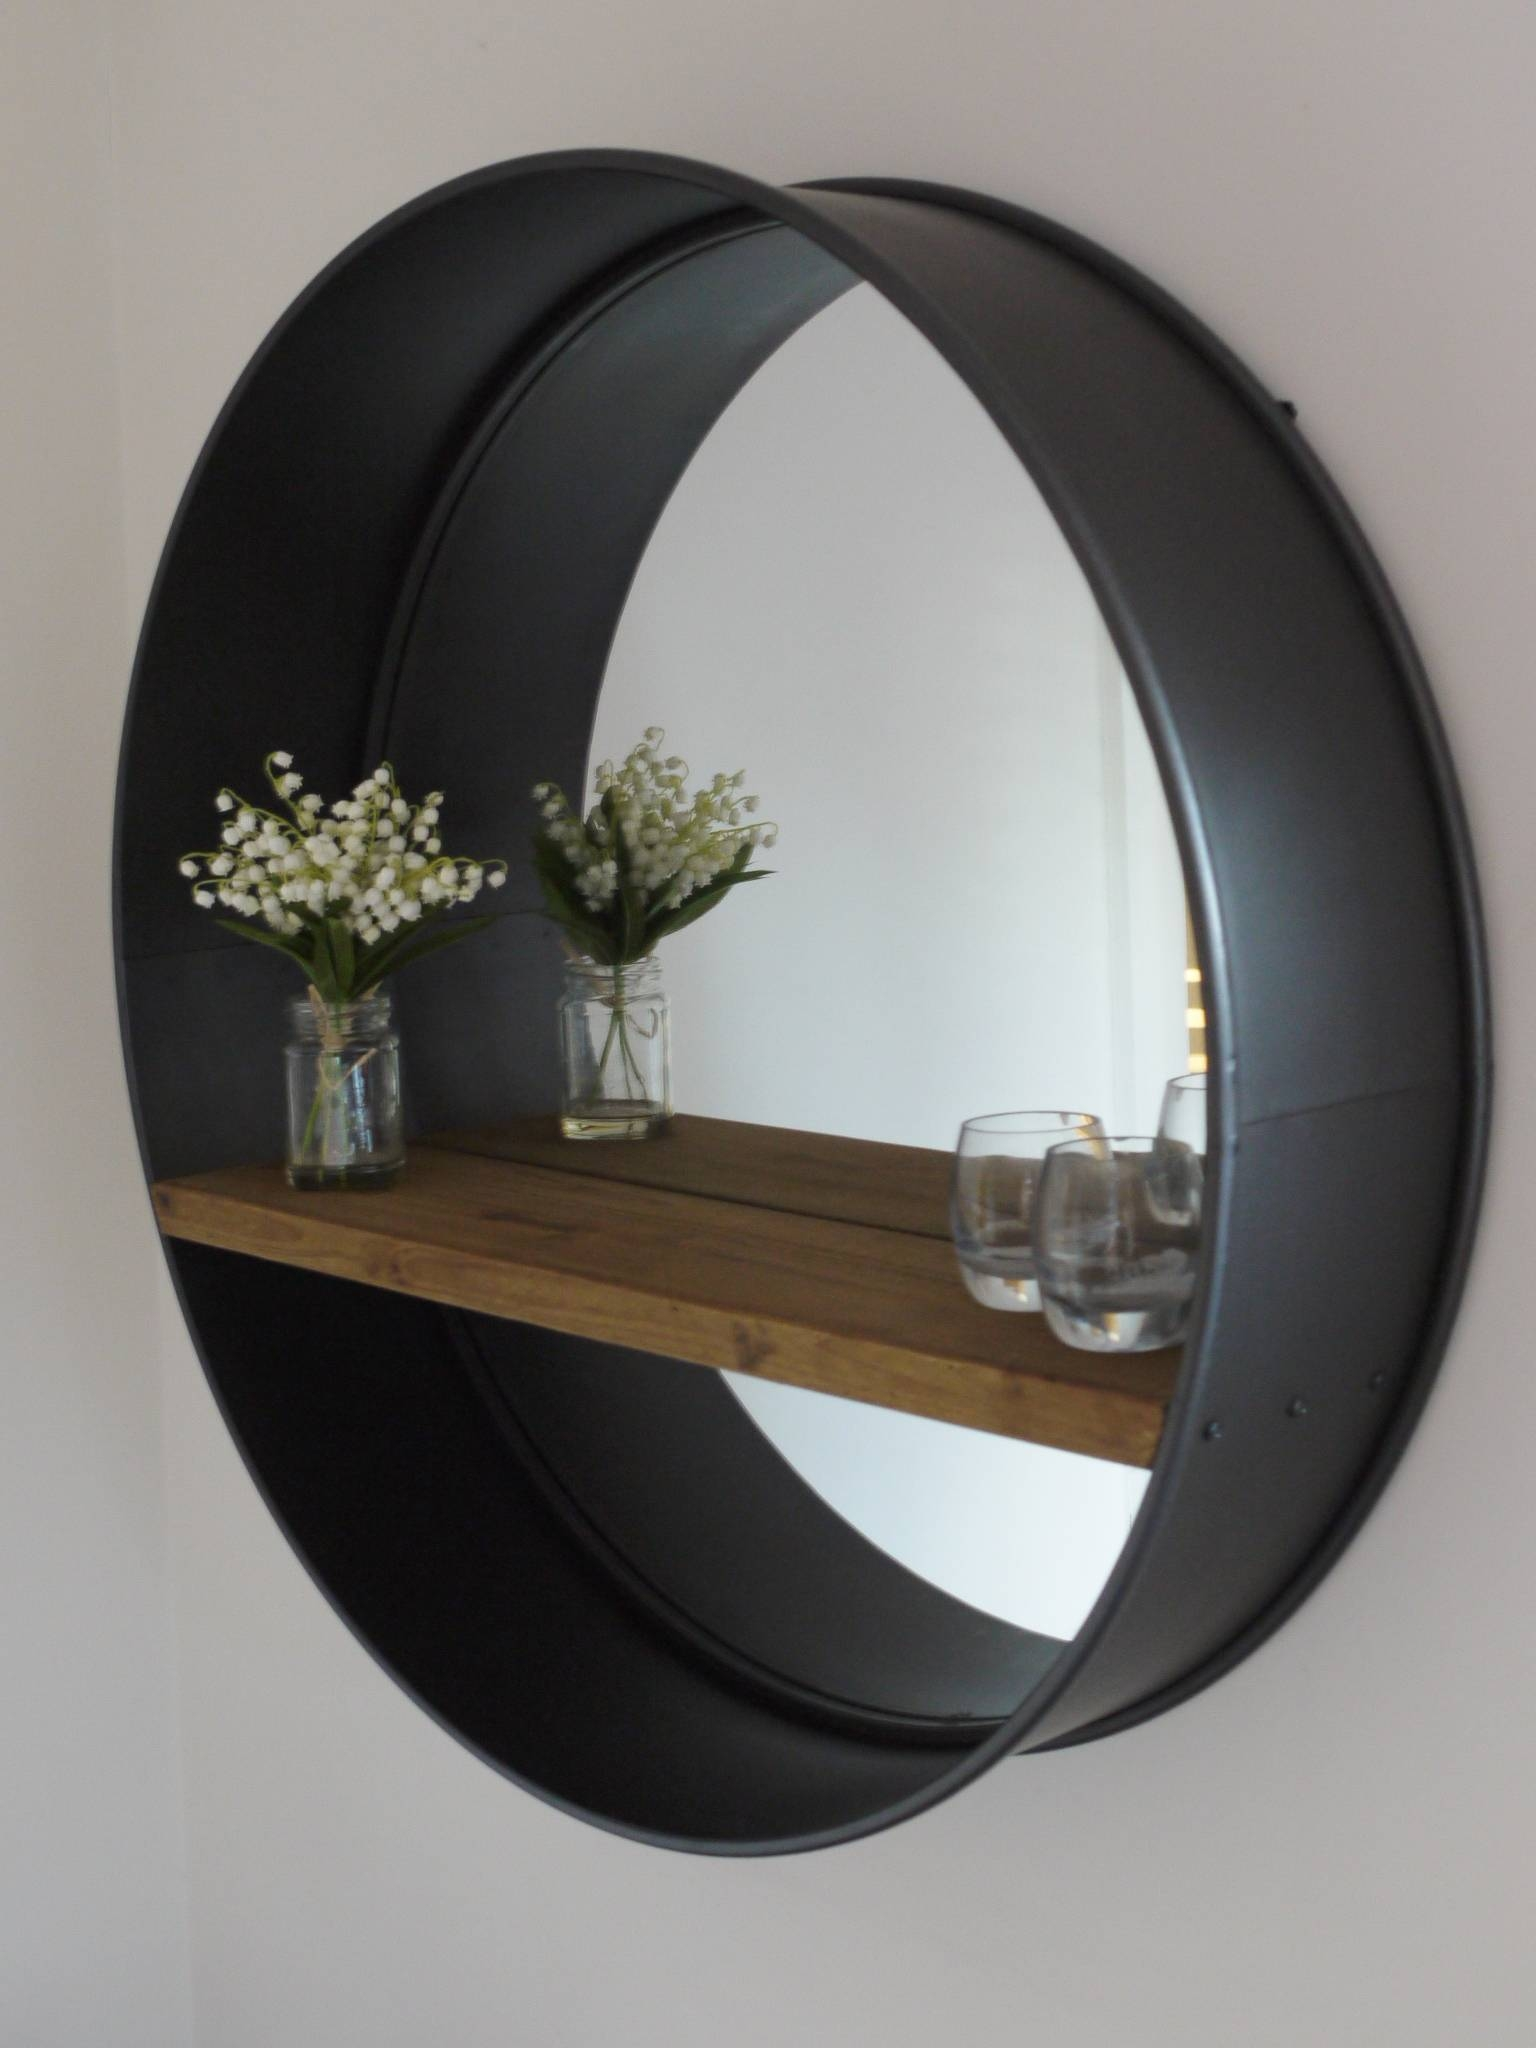 Retro Industrial Vintage Style Large Round Wall Mirror With Shelf within Retro Wall Mirrors (Image 20 of 25)